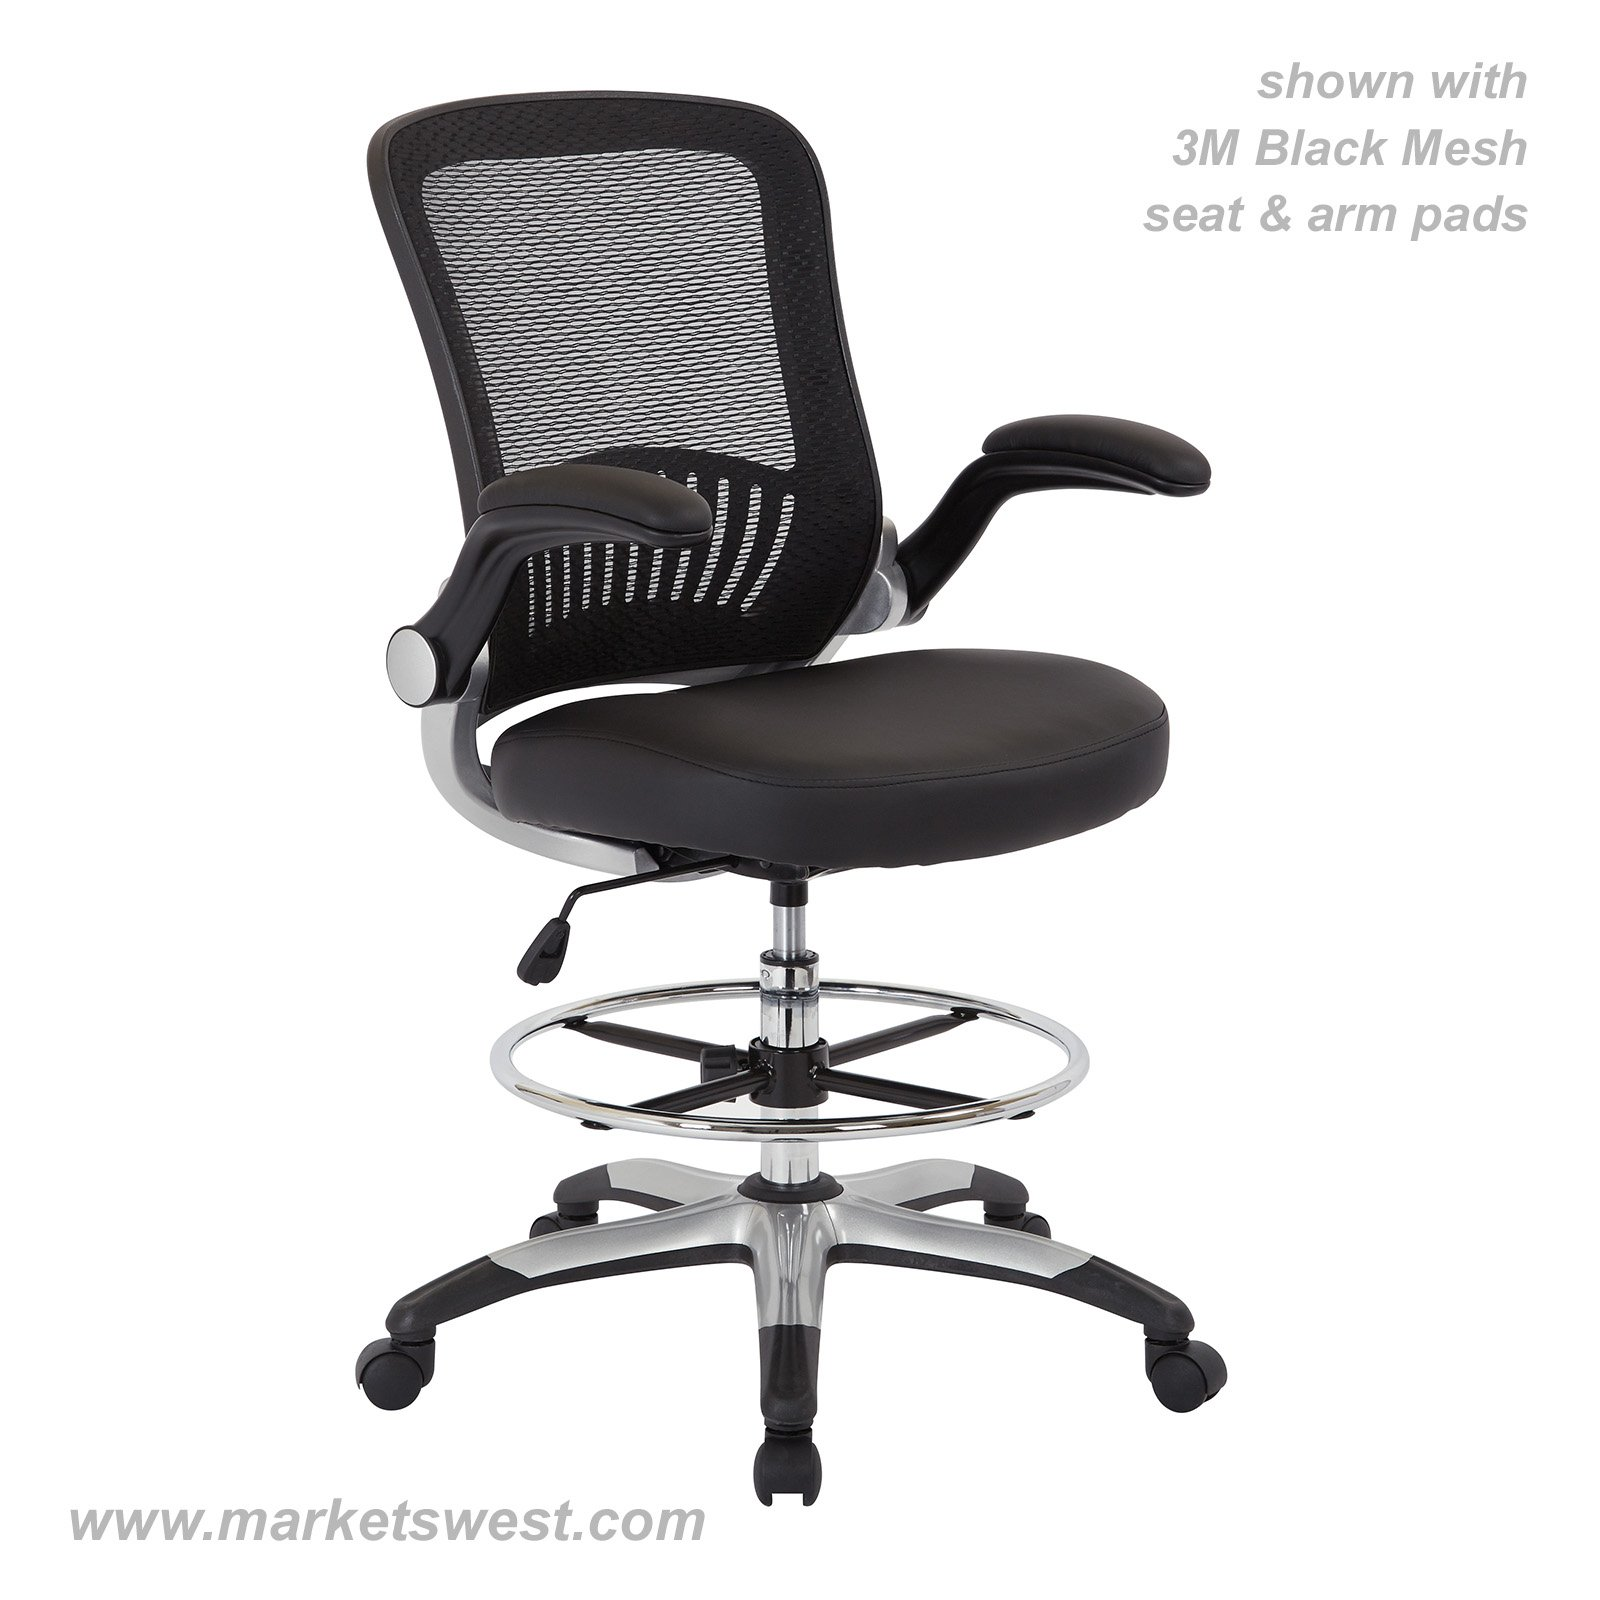 chair mesh stool outside fold up chairs black back drafting dcy69006 6 61 detail jpg